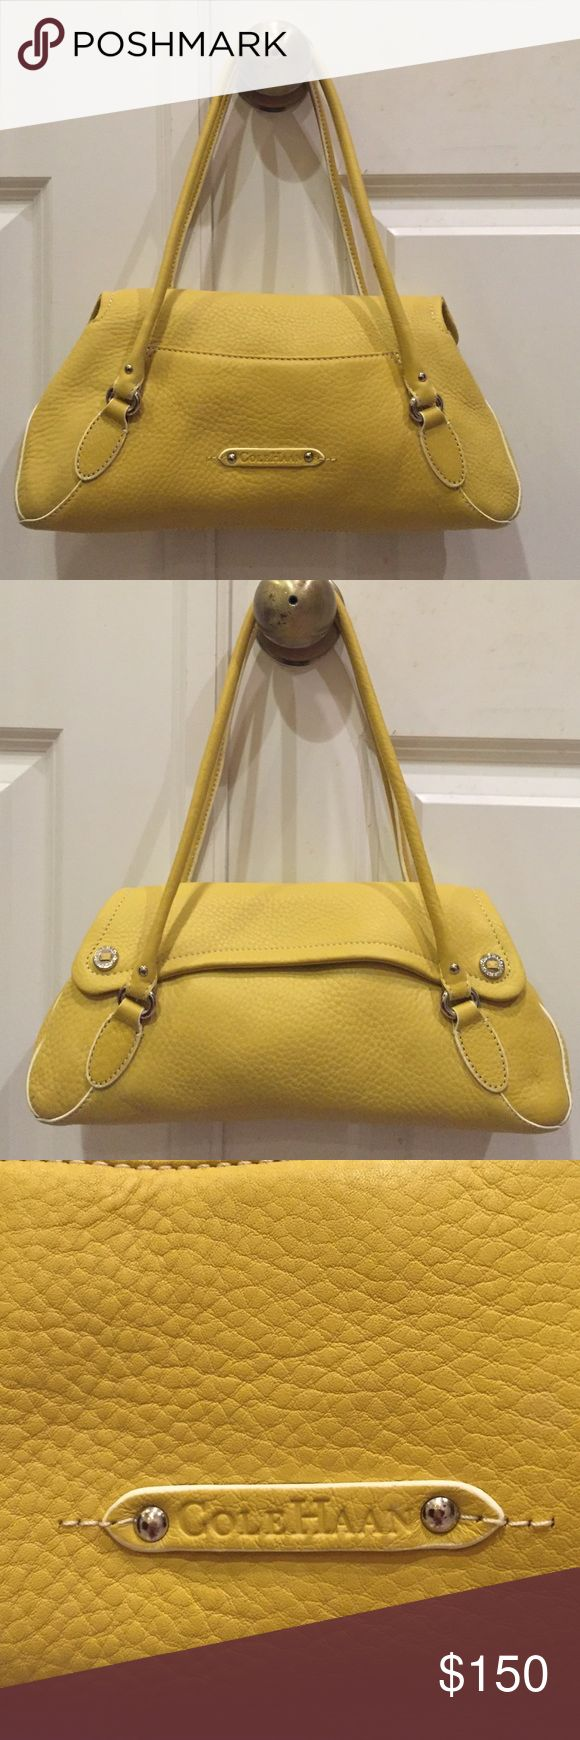 Cole Haan purse Brand new never used cute yellow Cole Haan purse. Has plenty of room yet not too big of a purse! Cole Haan Bags